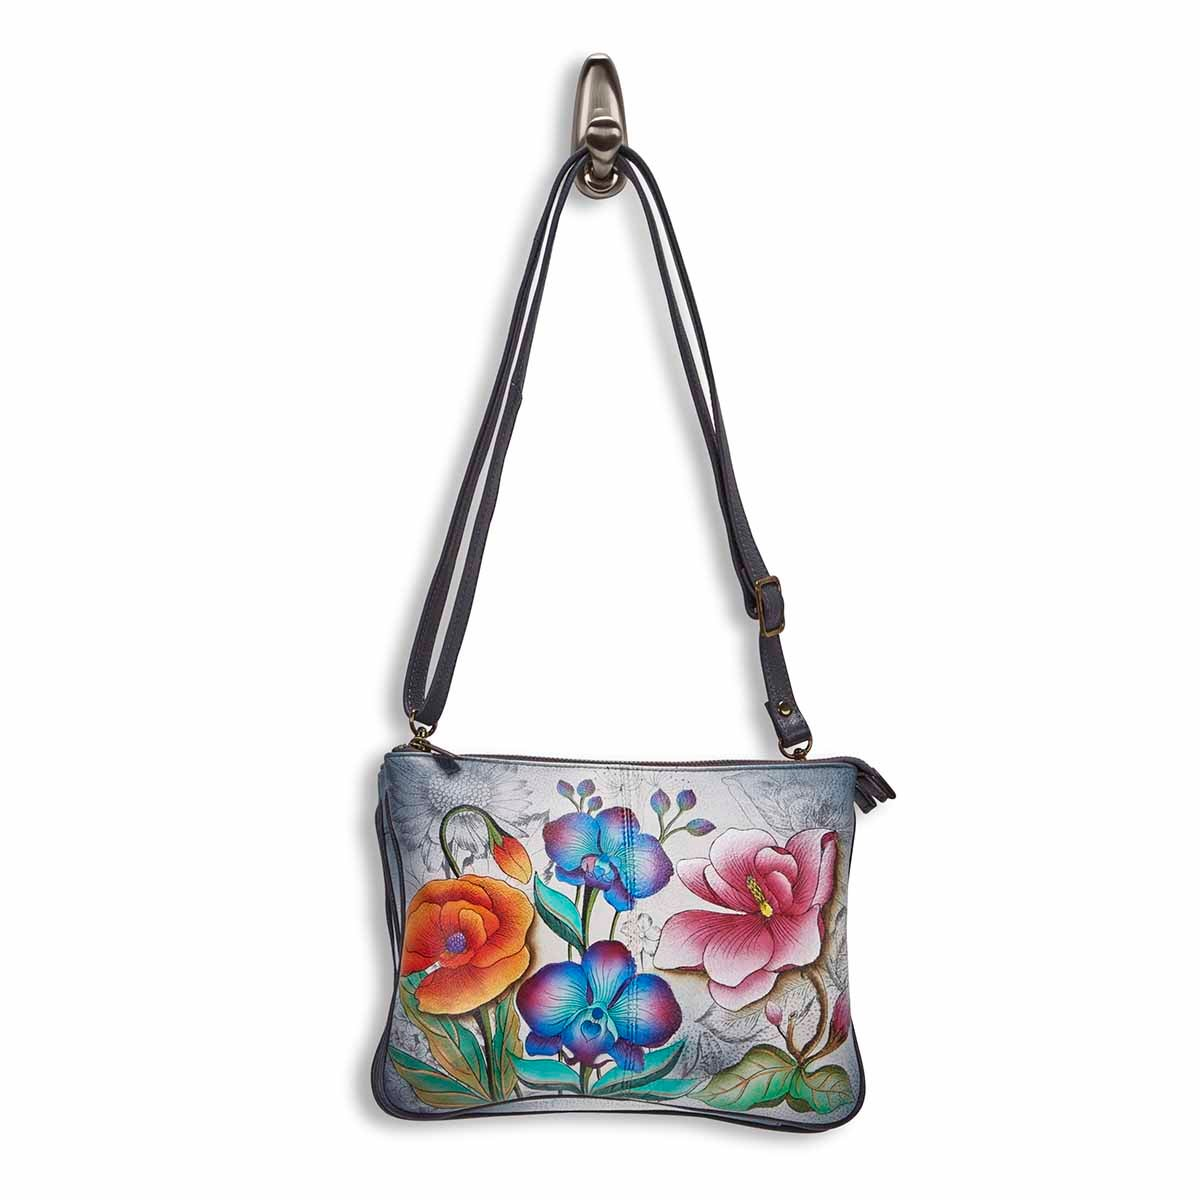 Painted leather Floral Fantasy crossbody